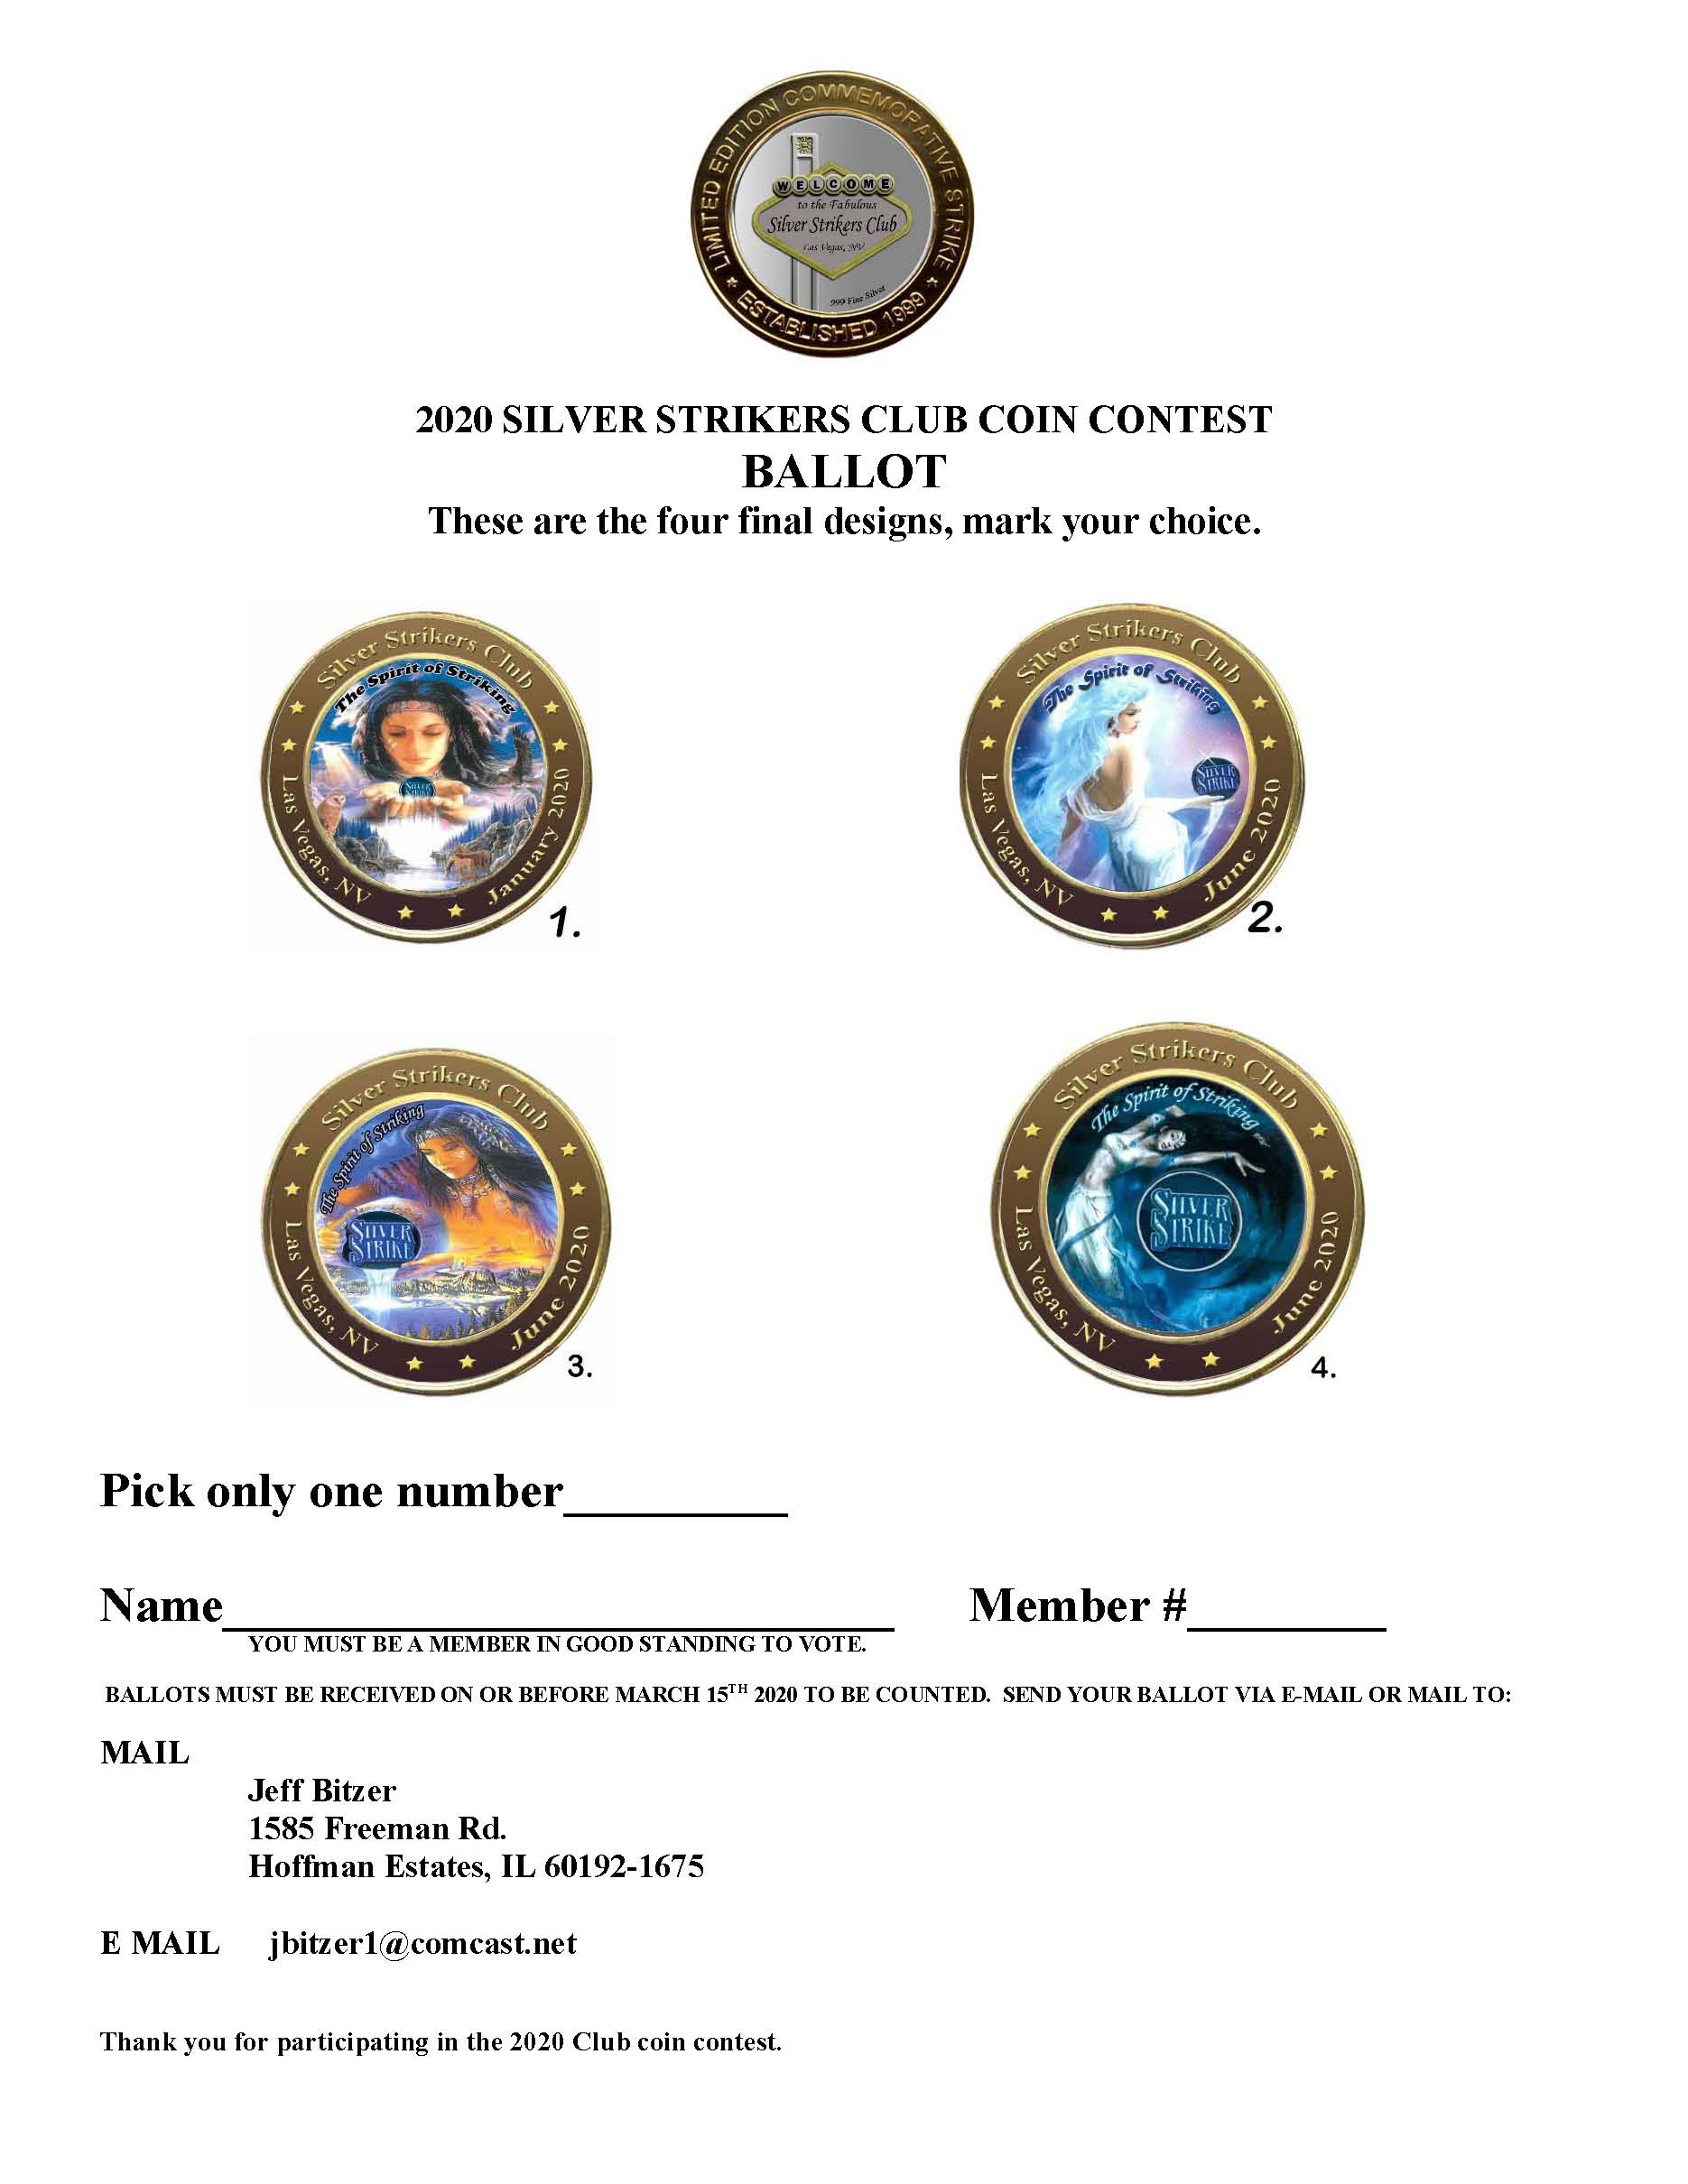 Club Coin Contest Ballot Image 2020 Image